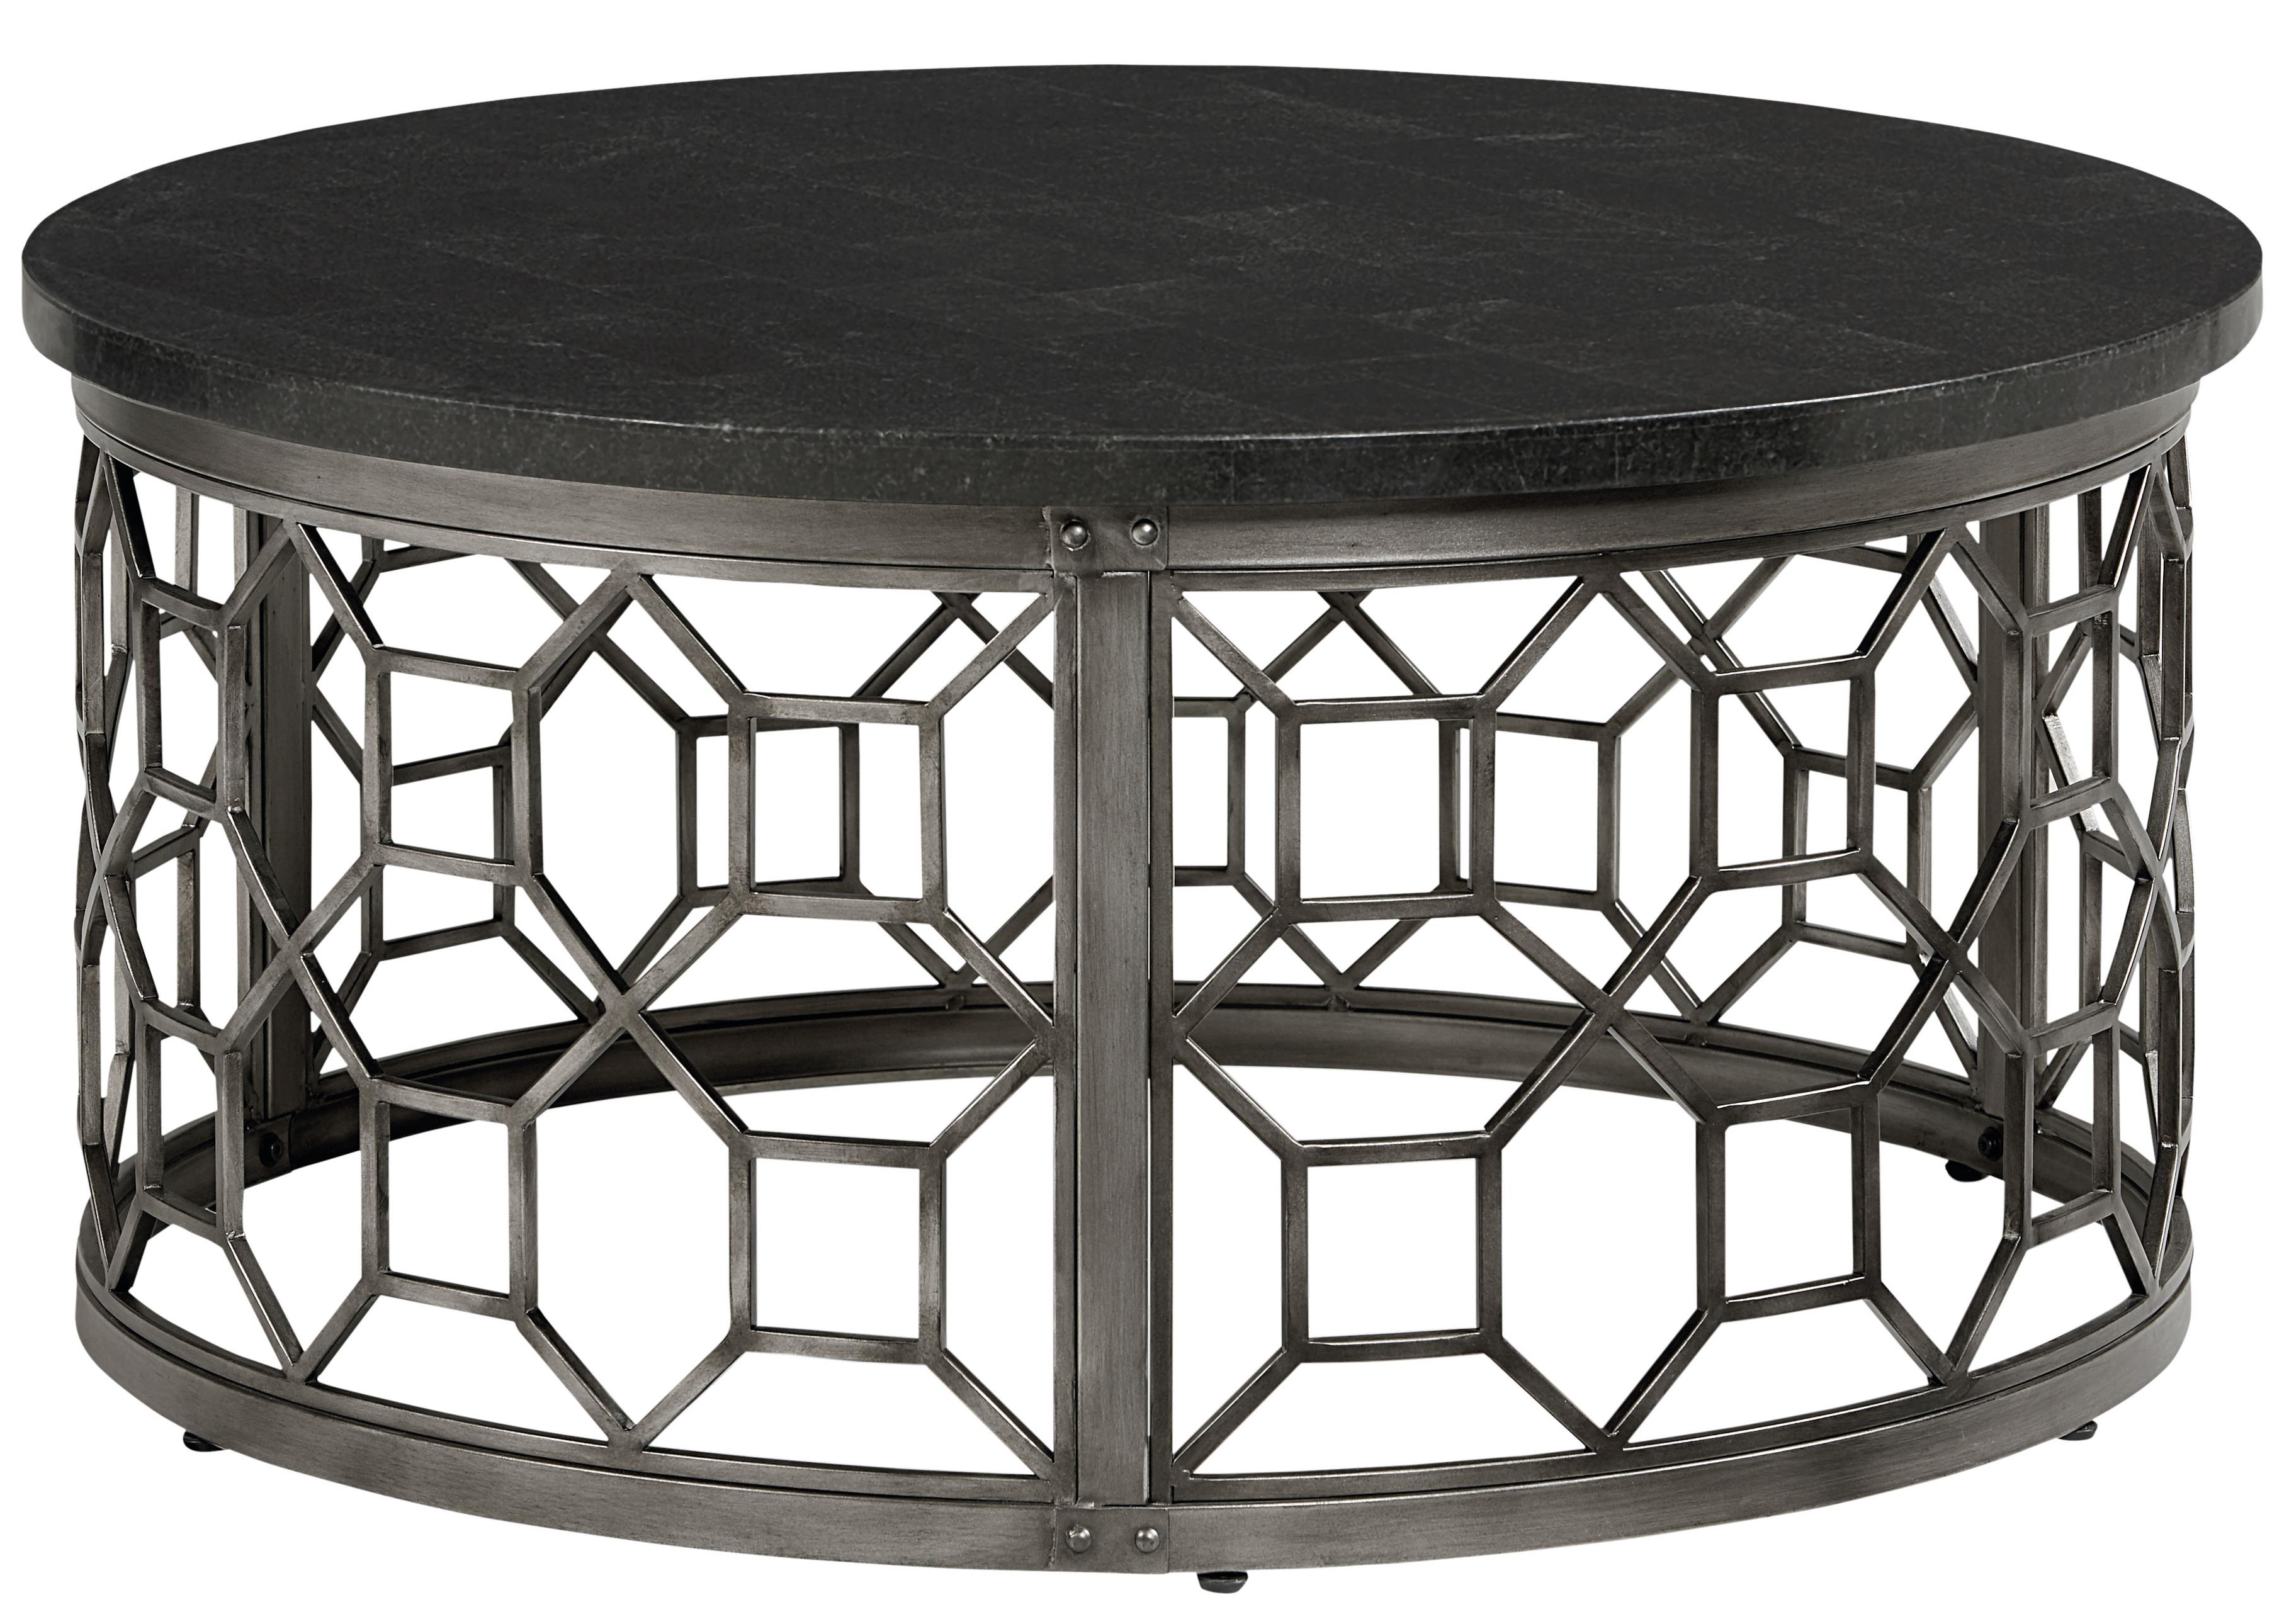 Standard Furniture Equinox Tables Cocktail Table - Item Number: 28921+2028921